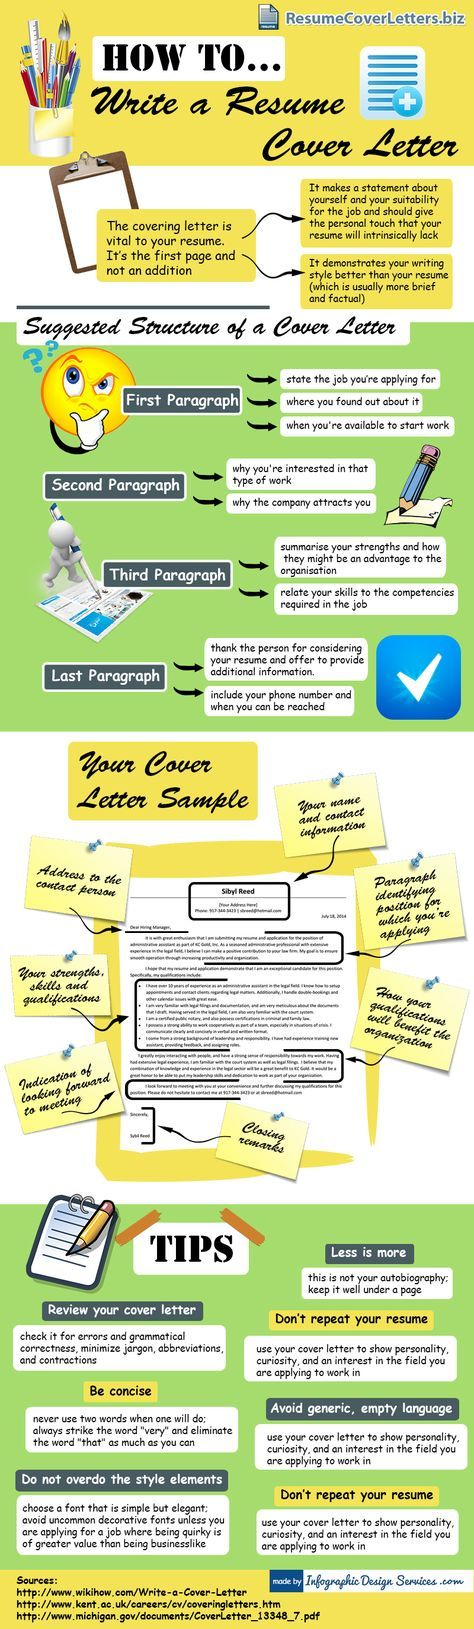 Resume Cover Letter Writing Tips Visually Job Interview - cover letter writing